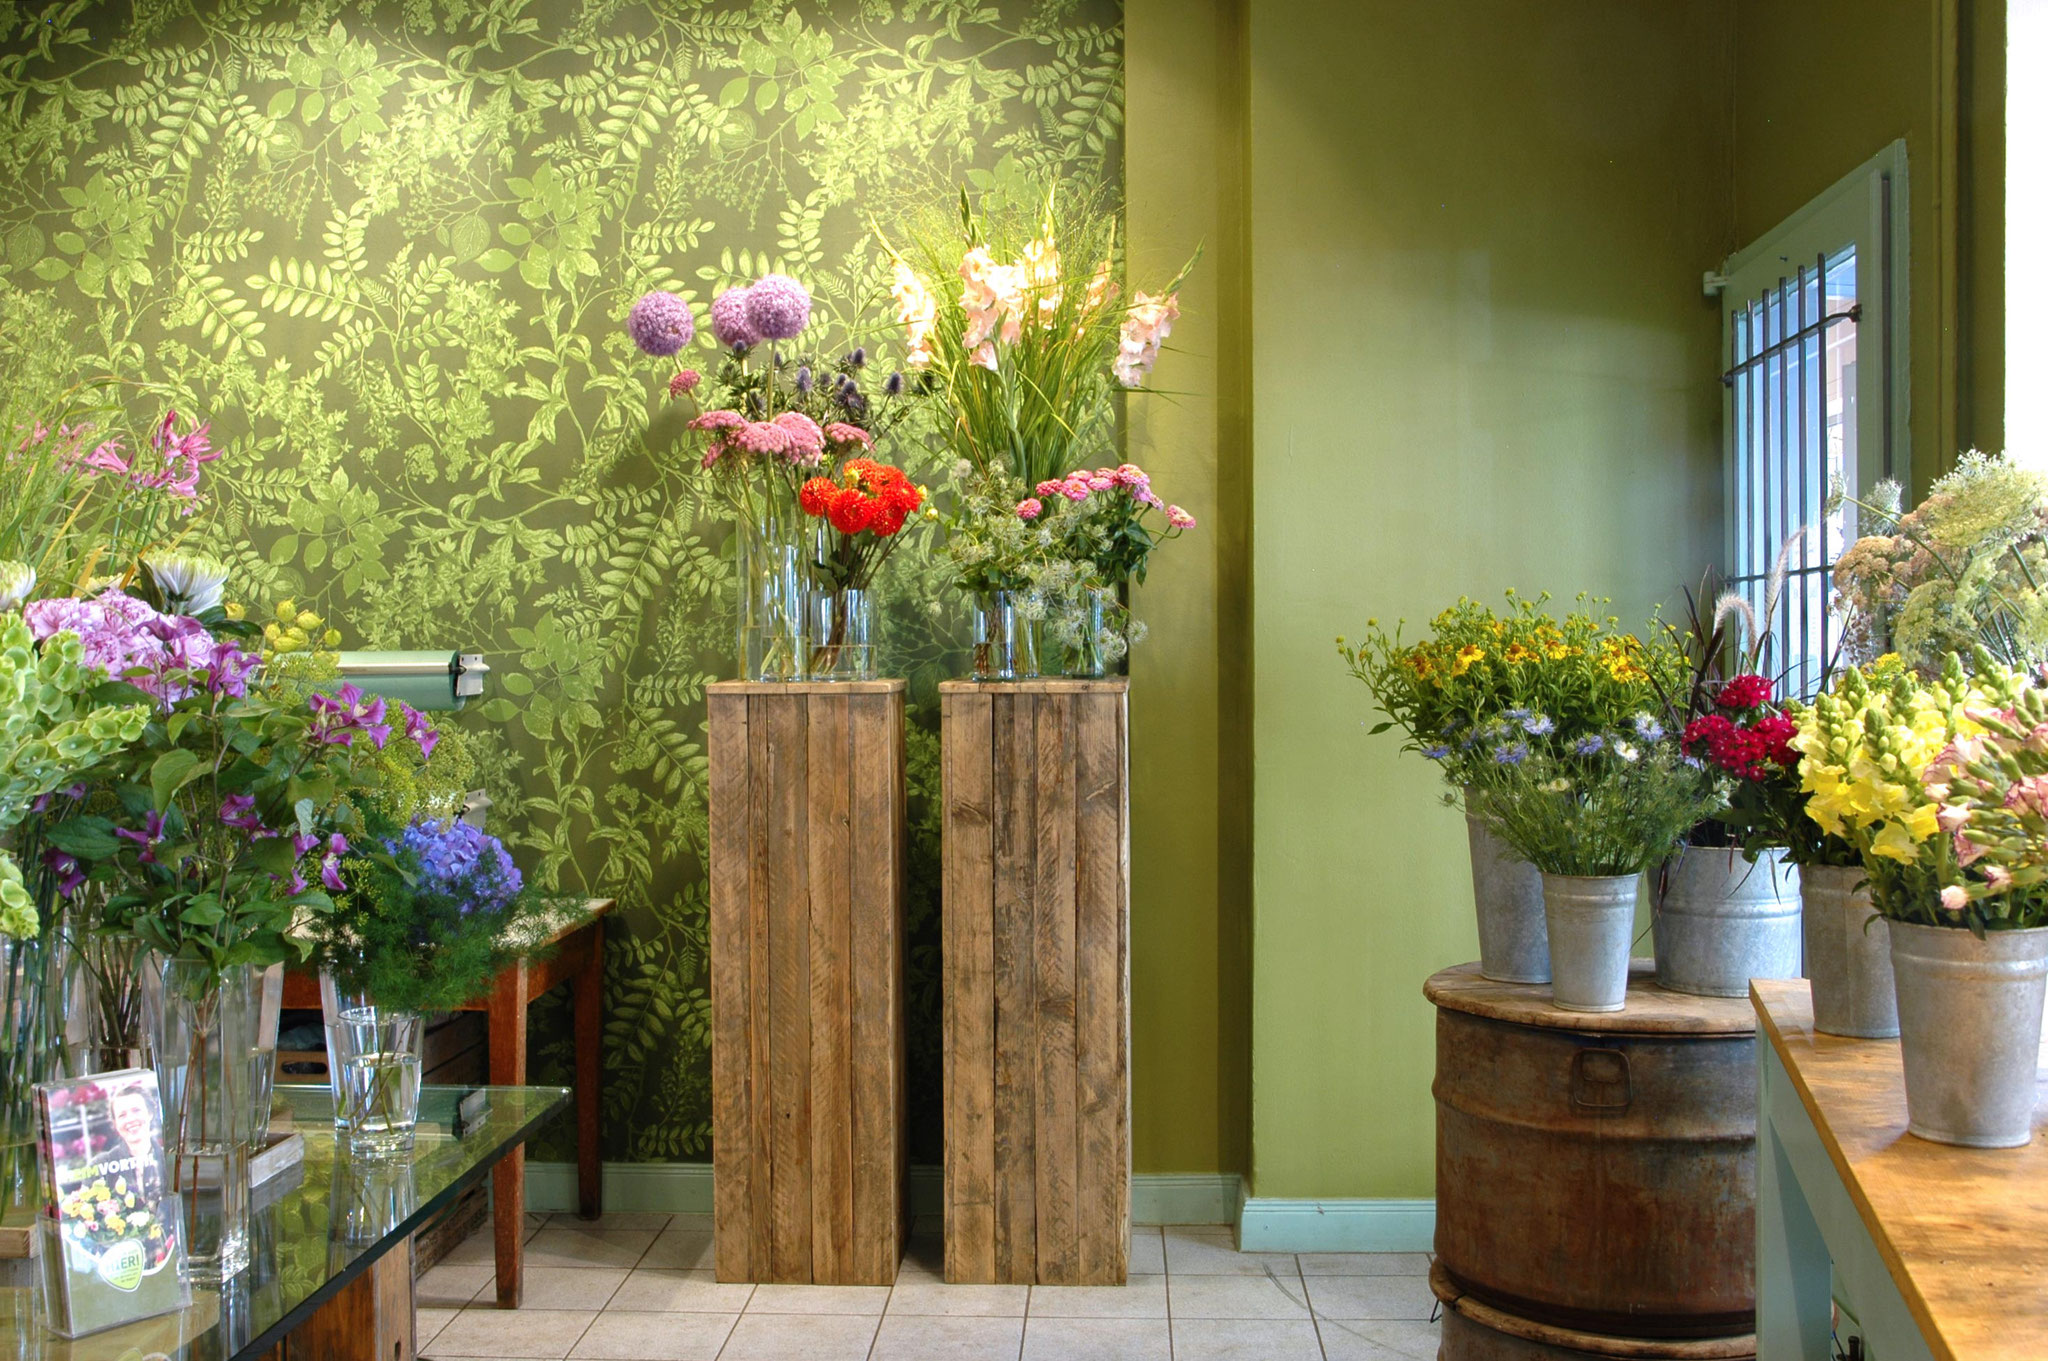 Flower Shop Design / green wallpaper with leaves